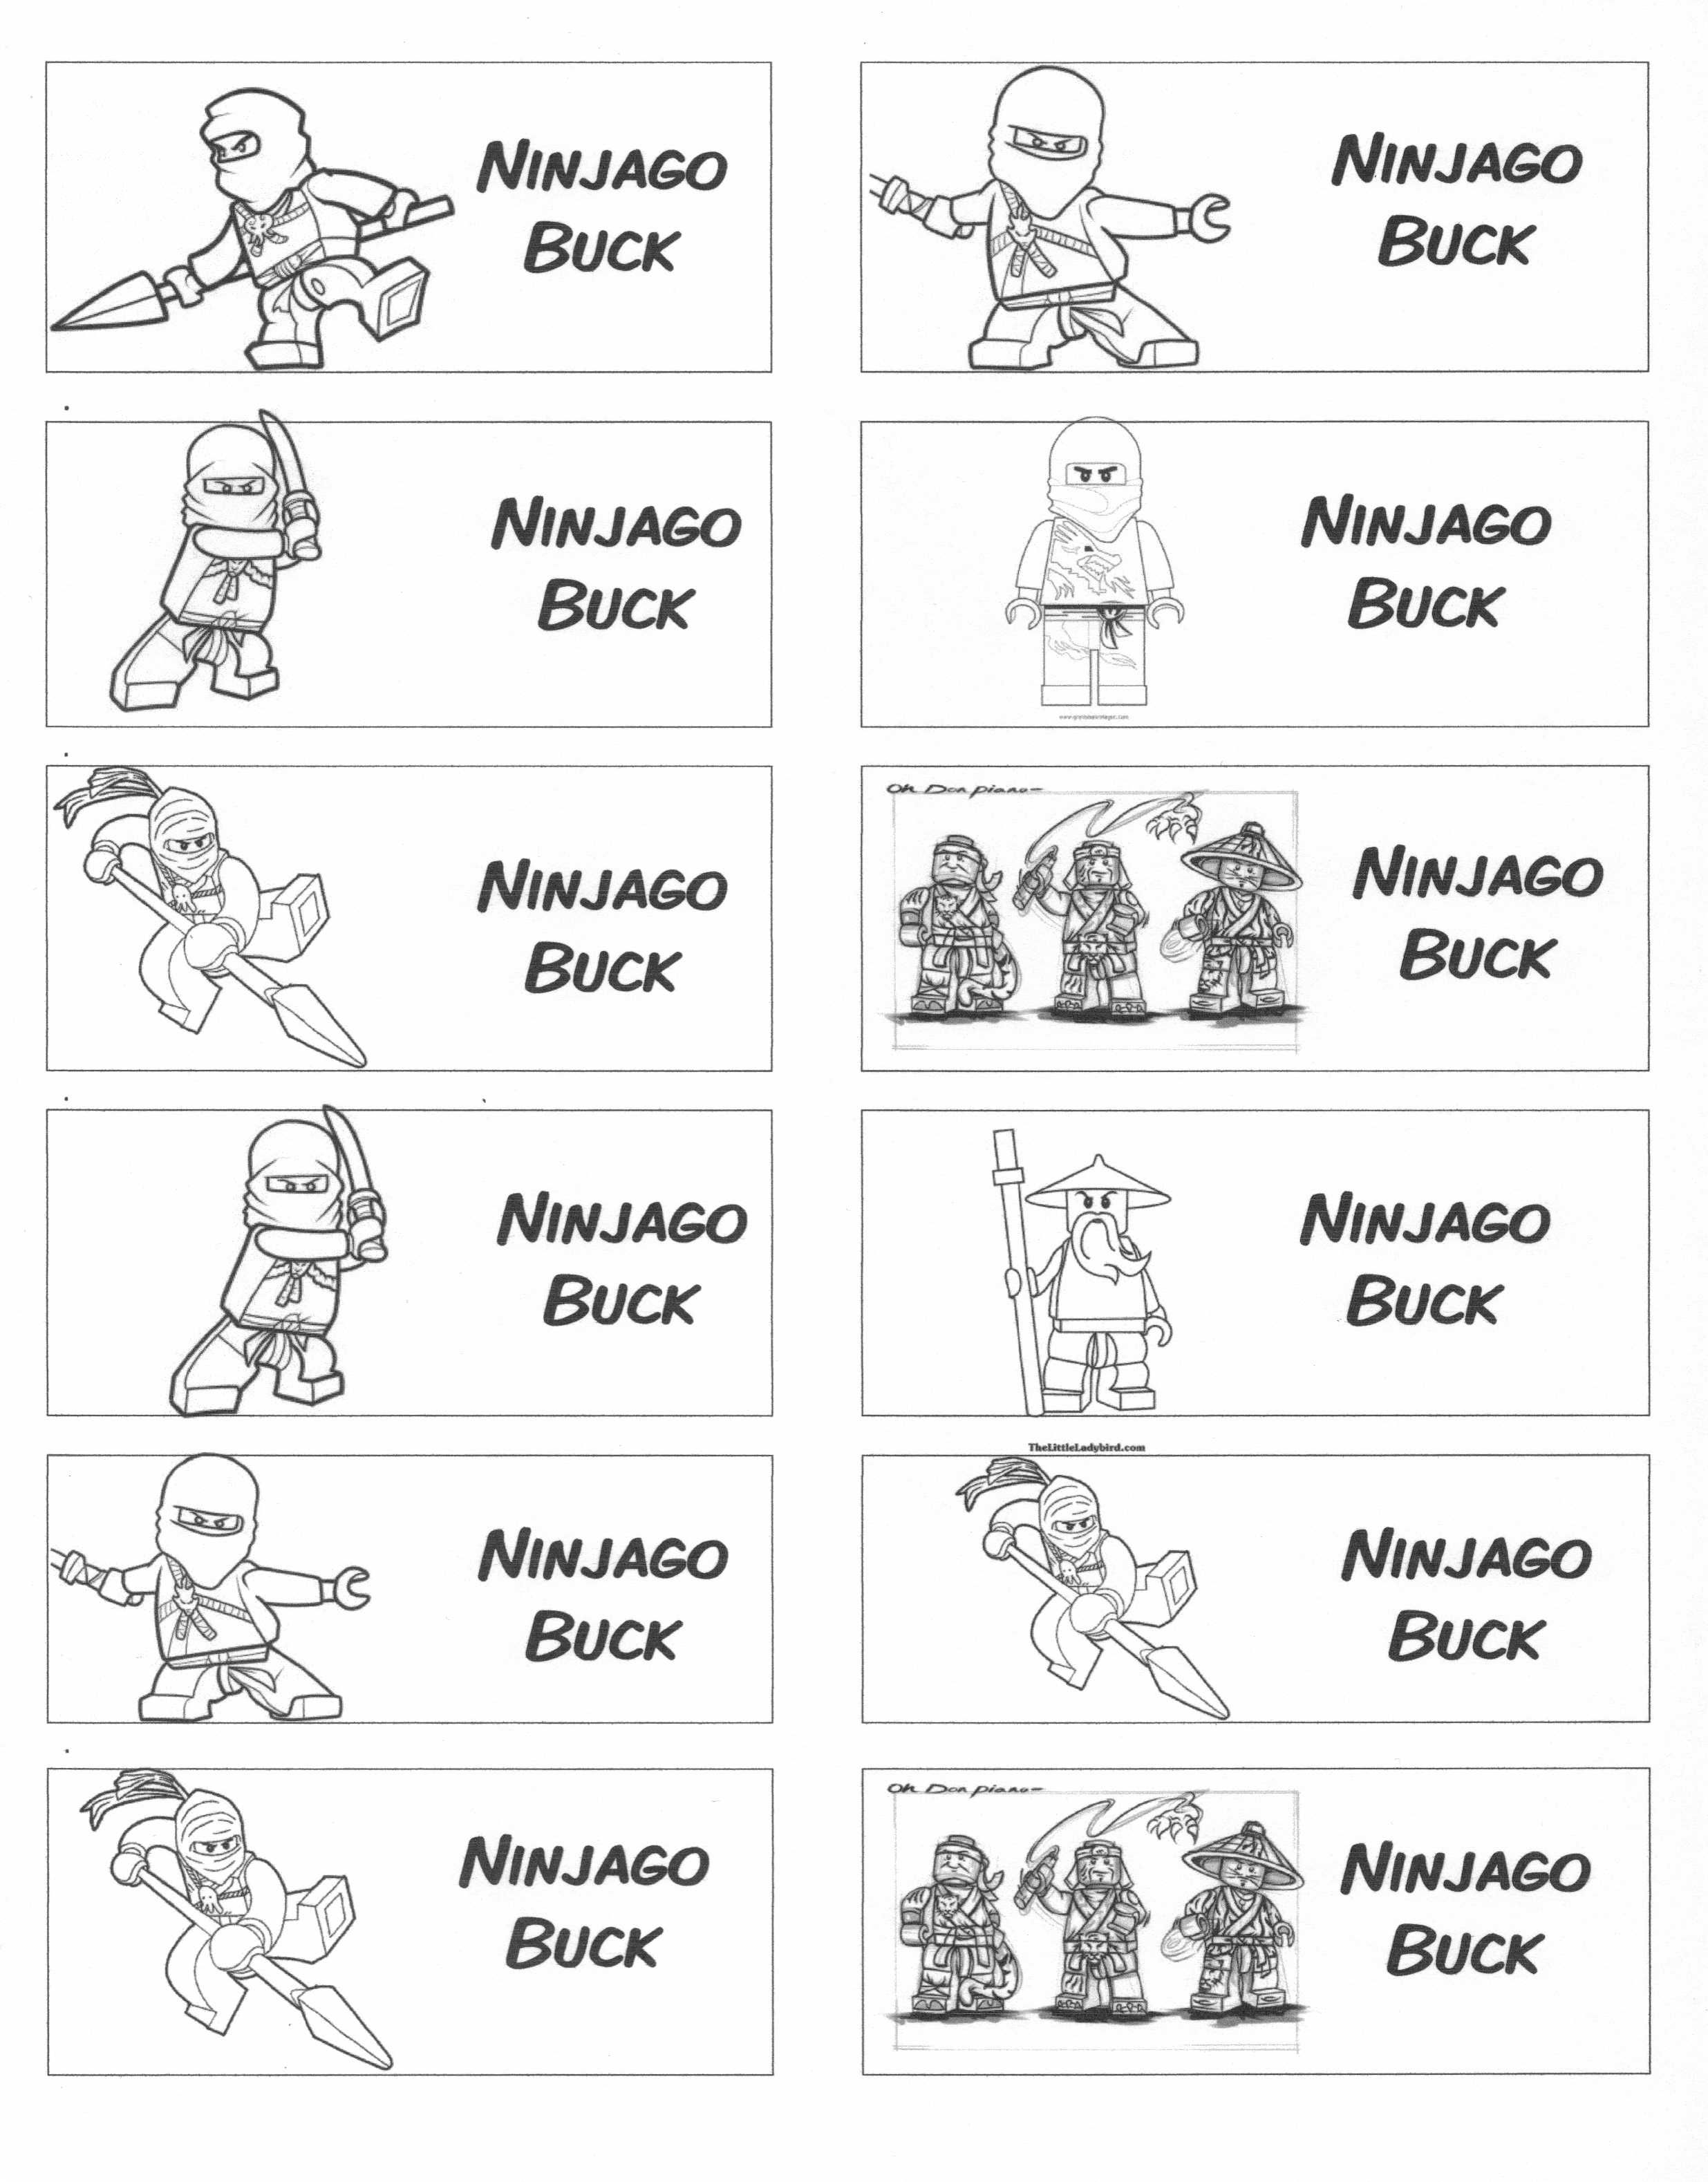 ninjago behavior bucks for use a behavior modification ninjago behavior bucks for use a behavior modification program give out 1 buck